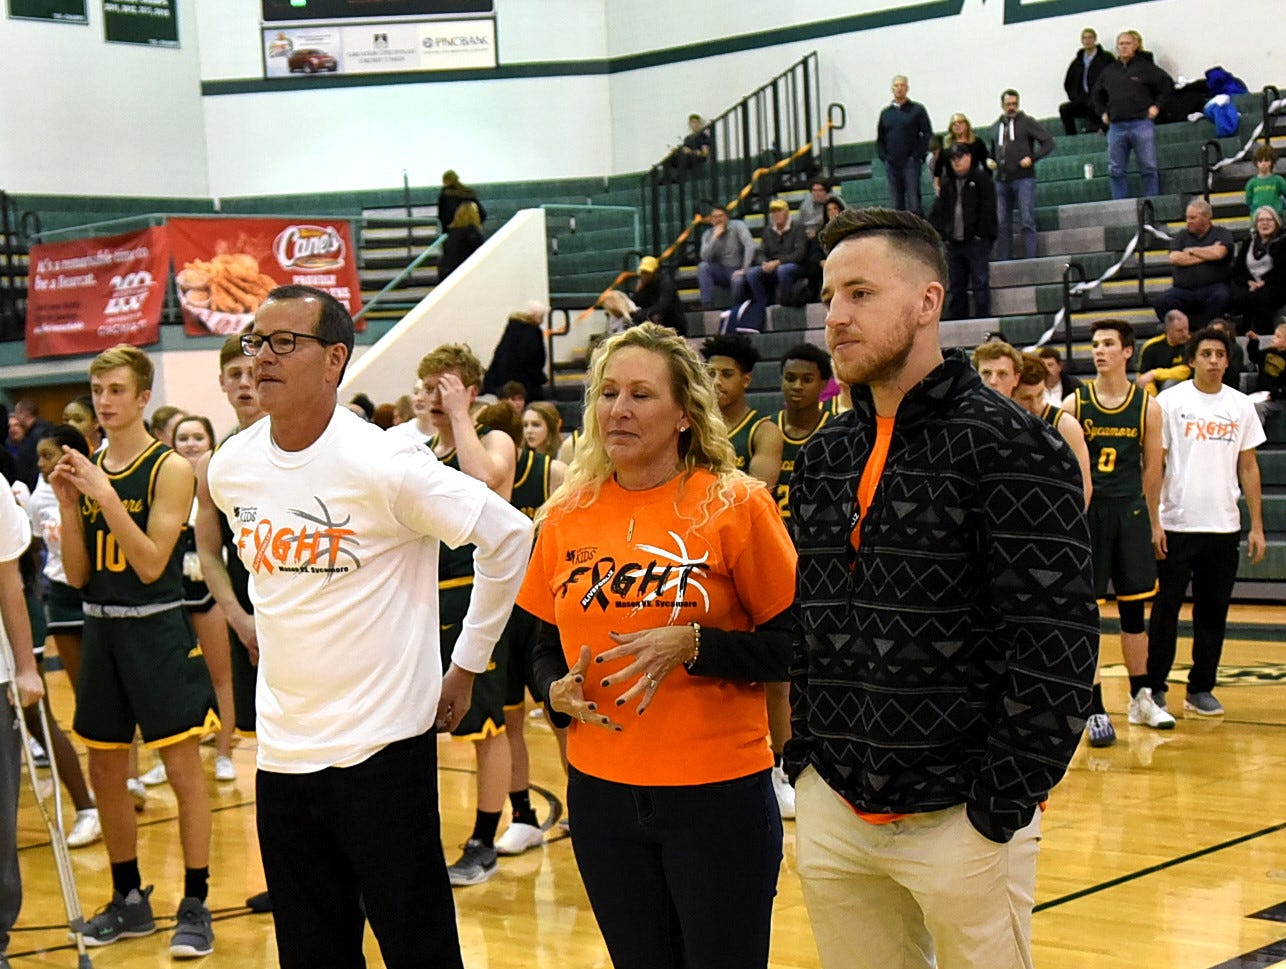 The family of Liz Lothrop is honored at the Third Annual Live for Liz Fight For Cancer Free Kids Basketball Game, Feb. 1, 2019.